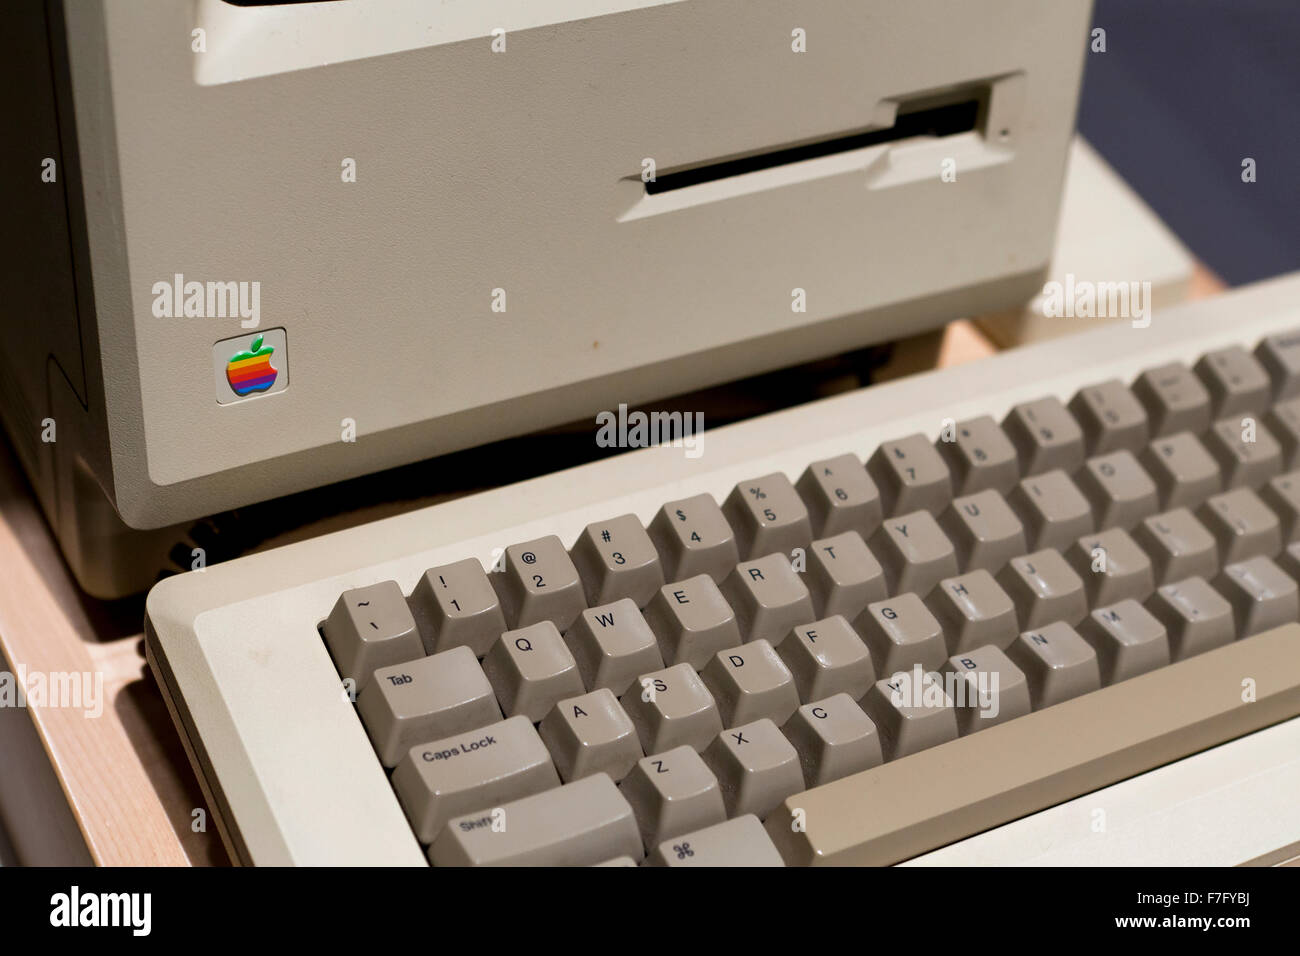 apple-macintosh-128k-computer-and-keyboa